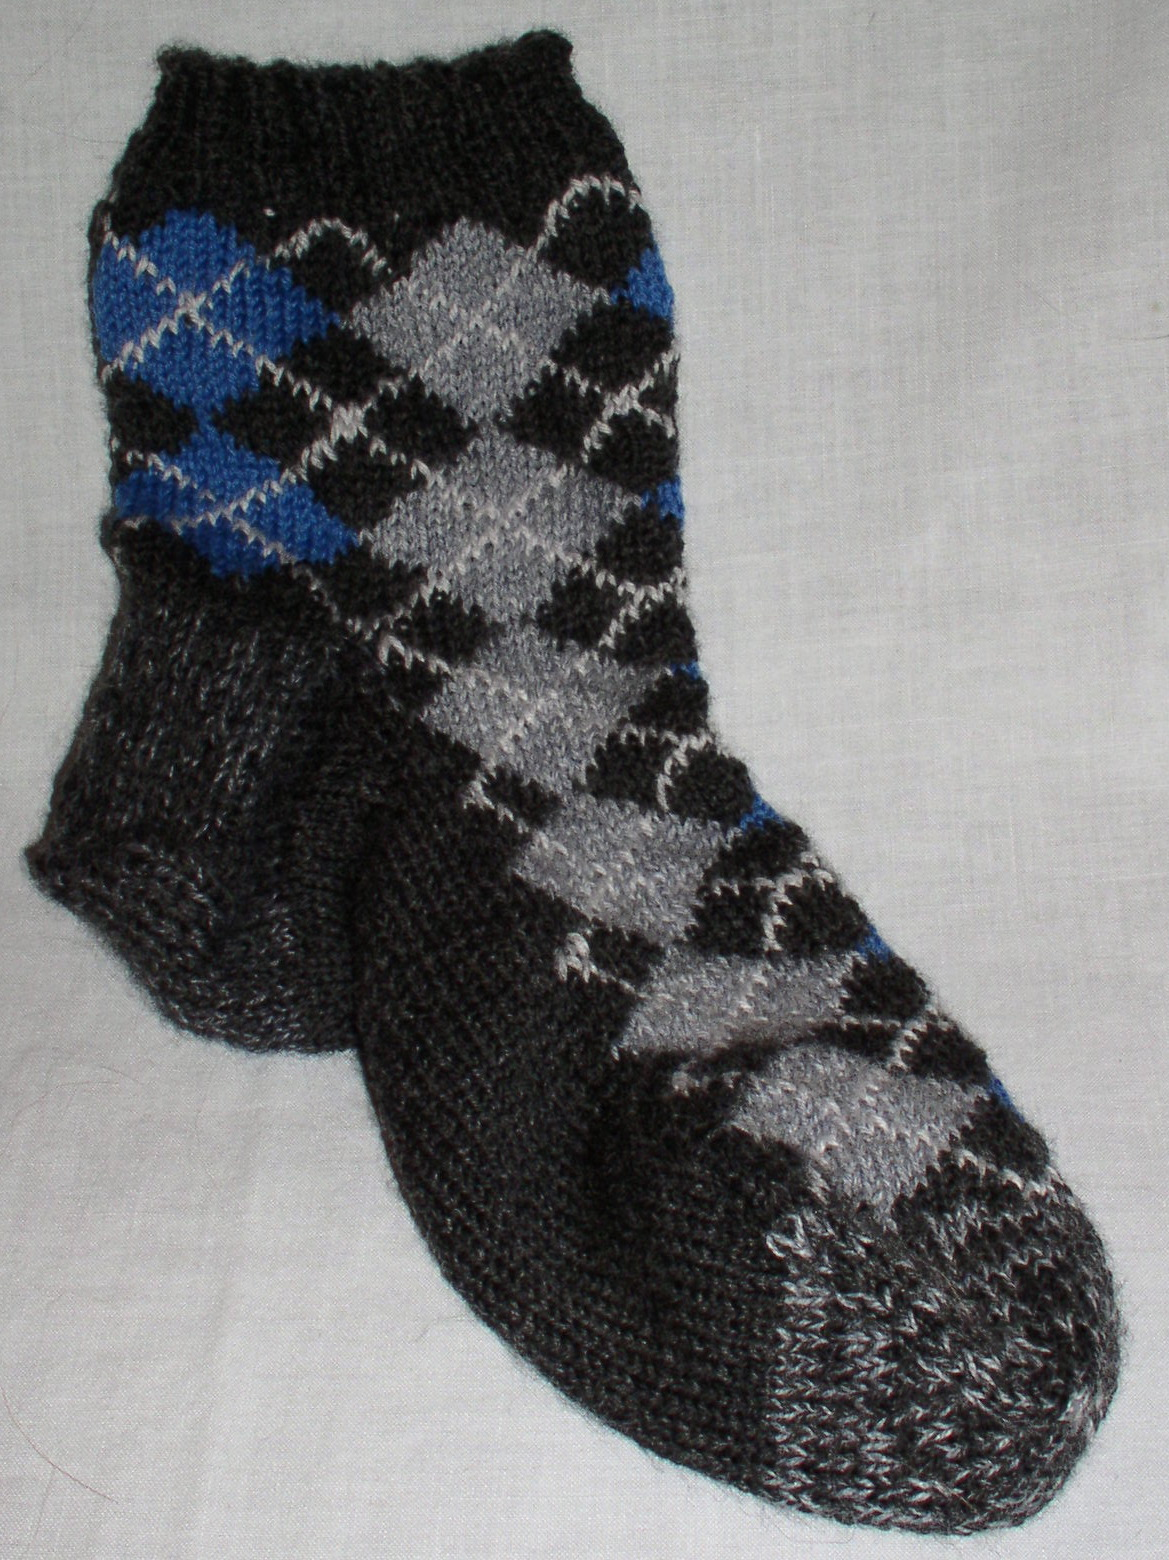 http://upload.wikimedia.org/wikipedia/commons/d/dc/Argyle-sock.jpg